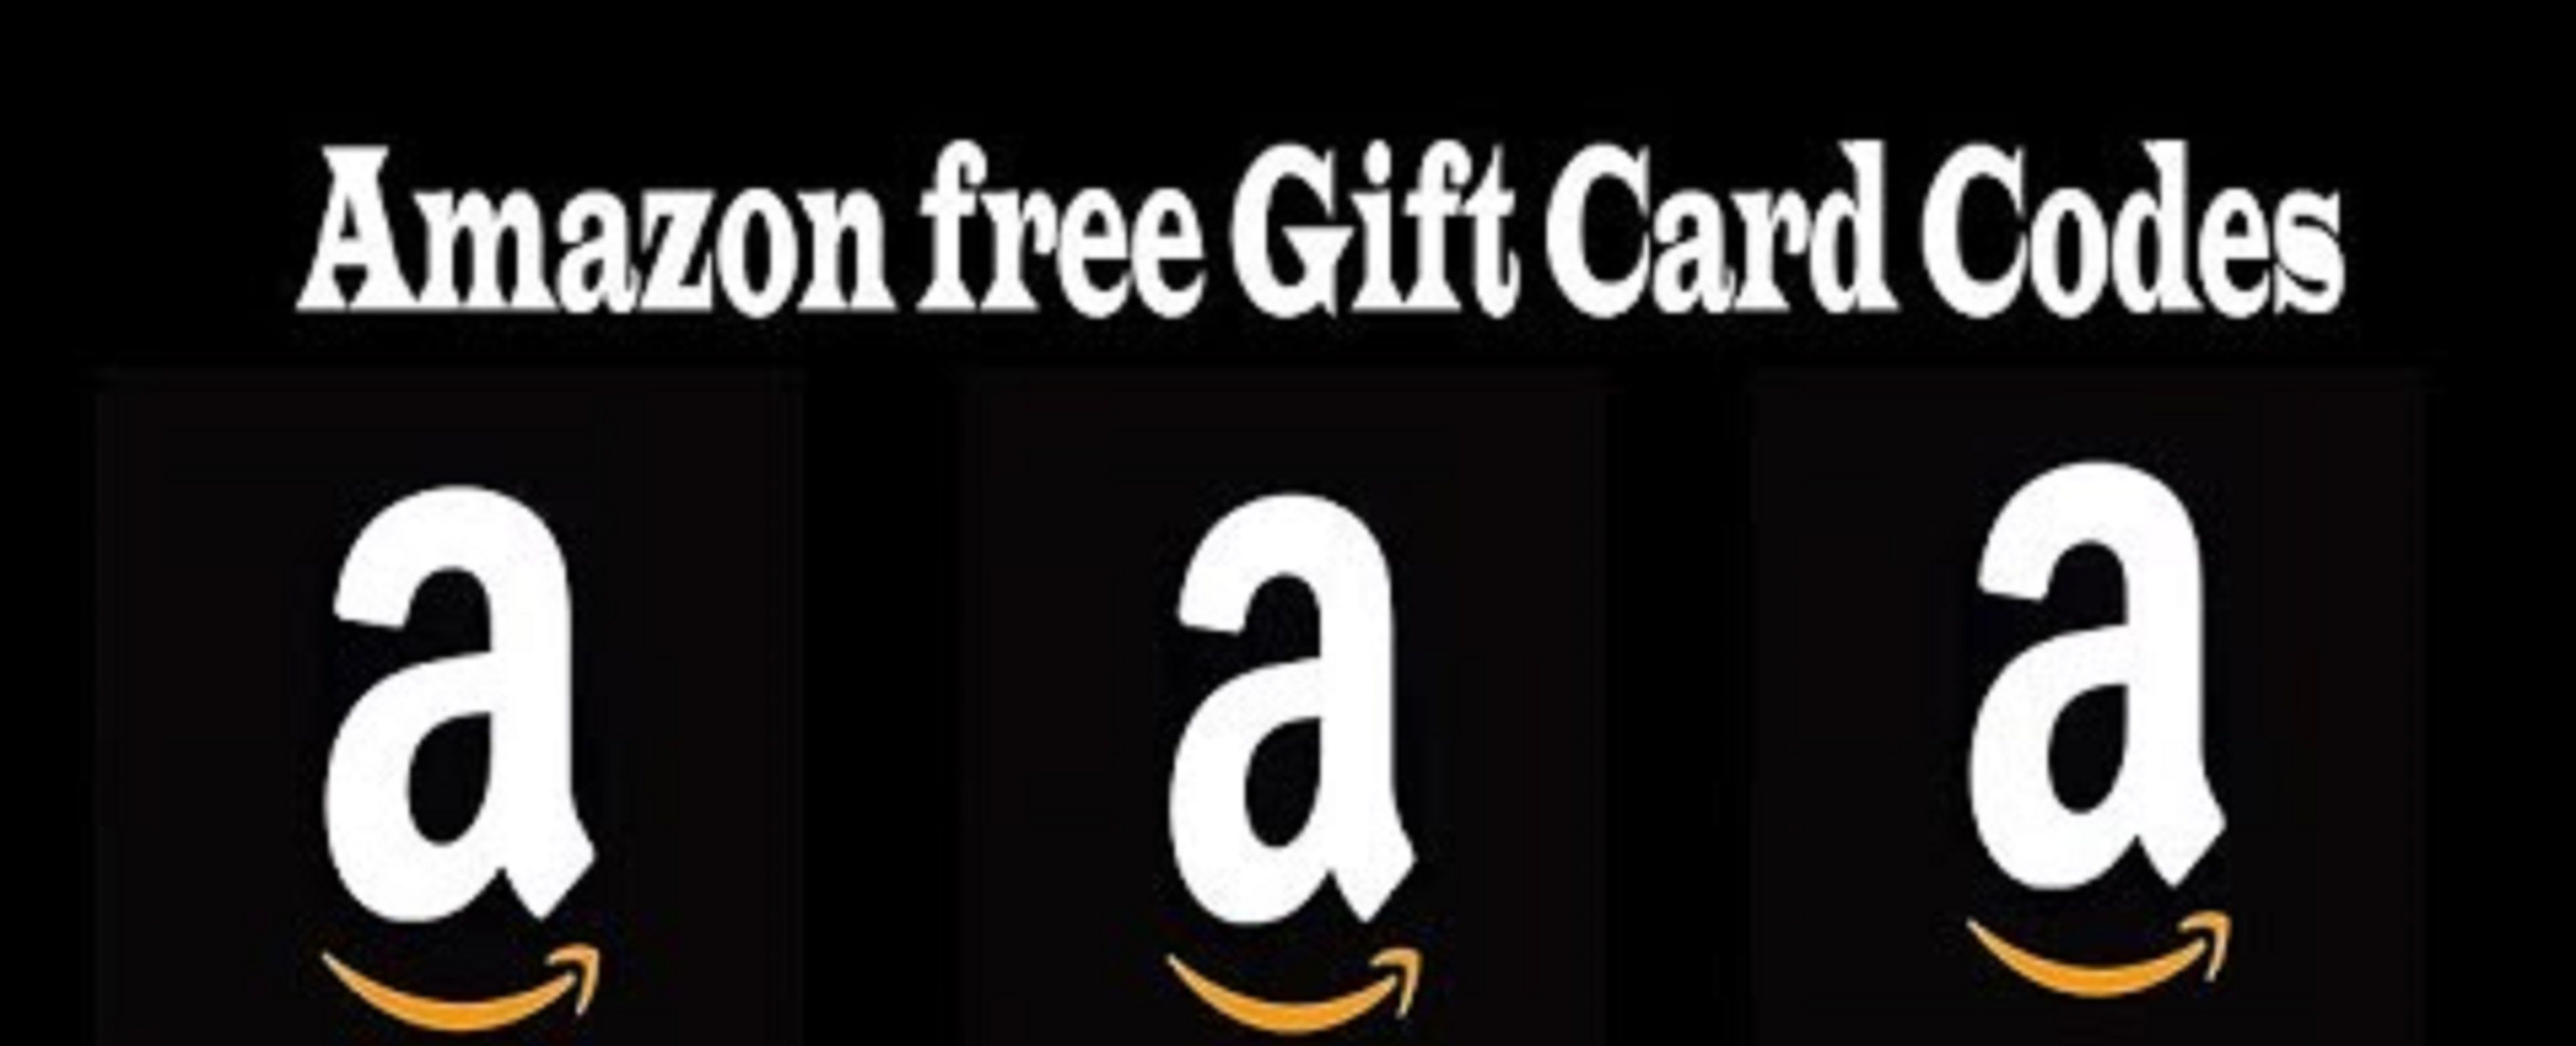 Amazon Get Gift Card The Website Follow The Rule And Get 1000 Amazon Gift Card Amazon Gift Card Free Get Gift Cards Amazon Gifts